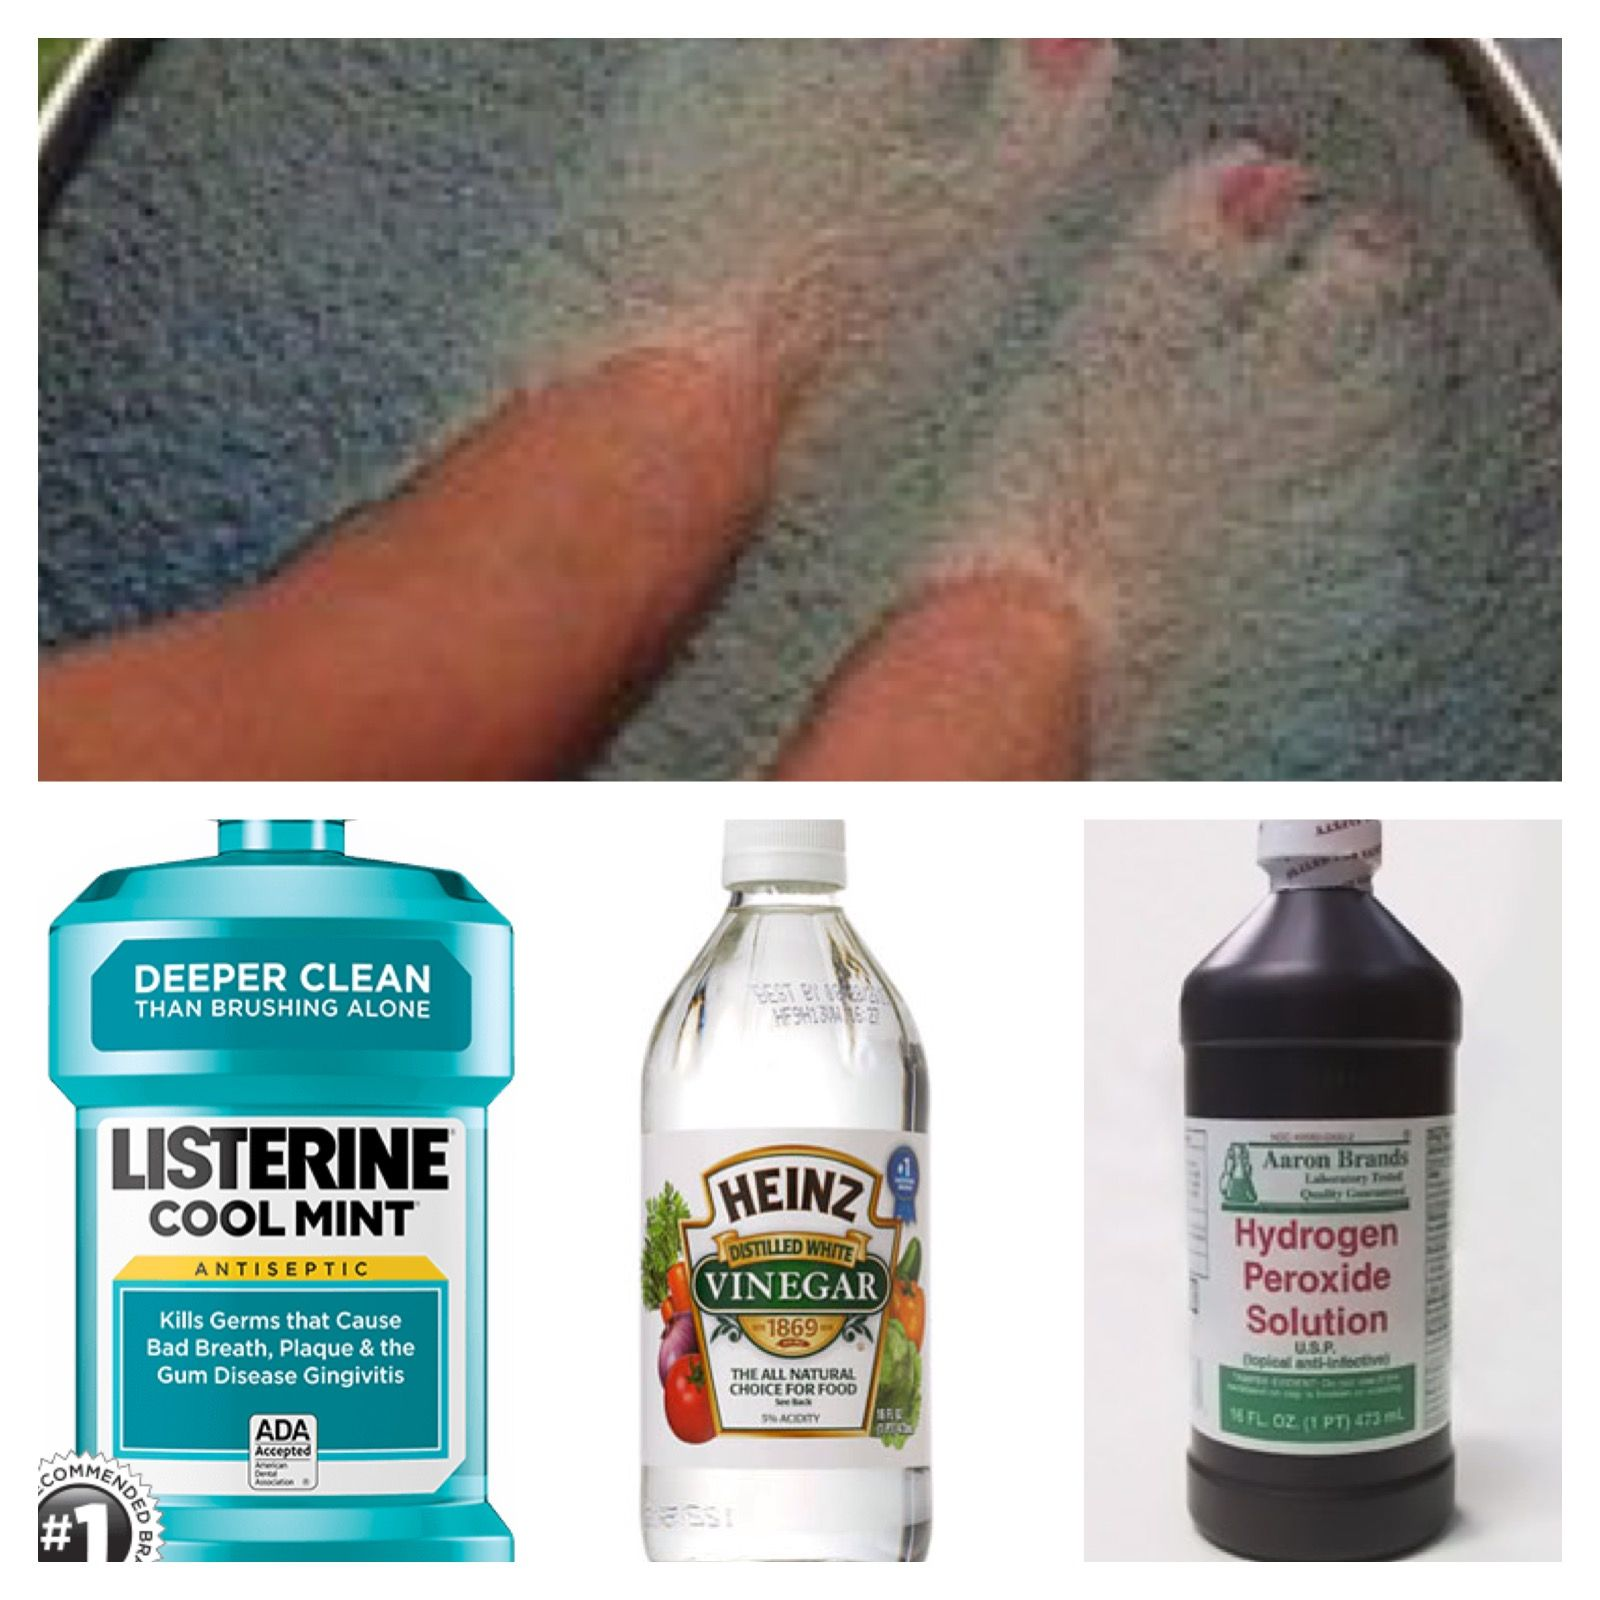 To Kill Toe Nail and Foot Fungus. 1/4 cup of each, listerine ...